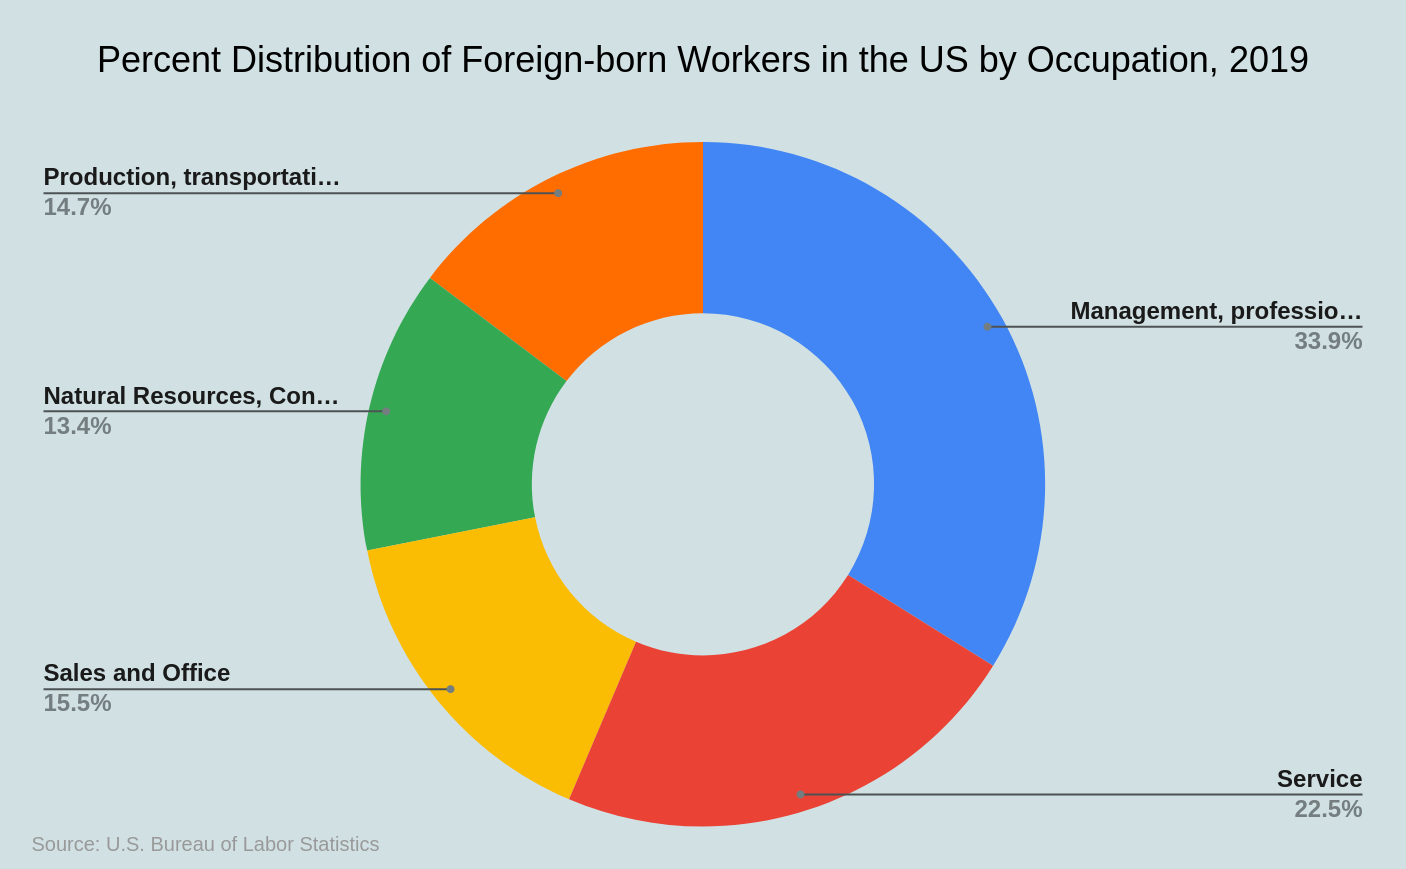 Most Popular Occupations Among Foreign-born Workers in the US